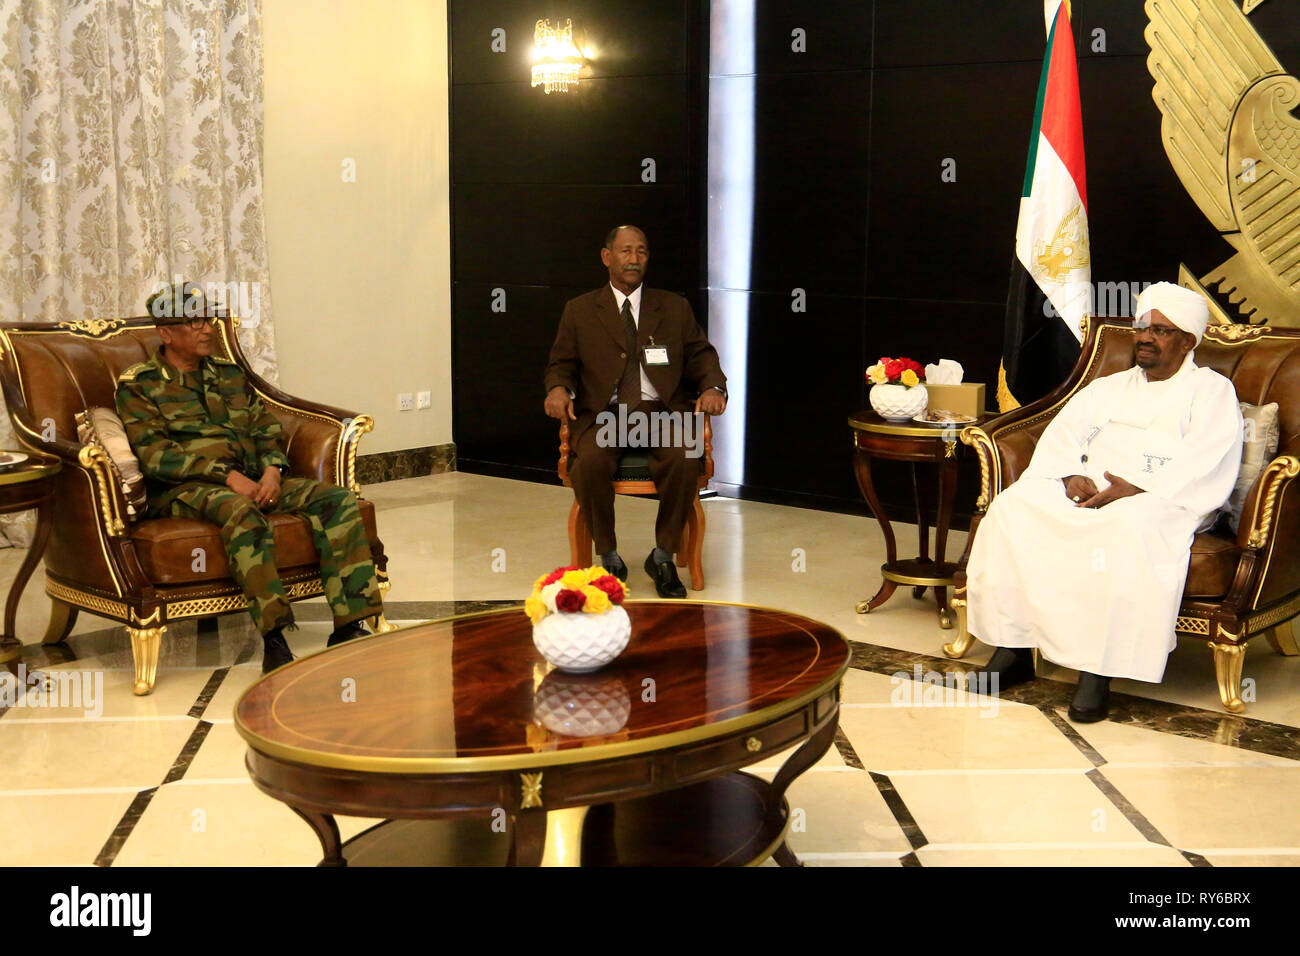 Khartoum, Sudan. 12th Mar, 2019. Sudanese President Omar al-Bashir (R) meets with Seare Mekonen (L), Ethiopian army's chief of staff, in Khartoum, Sudan, on March 12, 2019. Sudan and Ethiopia on Tuesday signed a protocol in Khartoum to deploy joint forces on the border between them. Credit: Mohamed Khidir/Xinhua/Alamy Live News - Stock Image